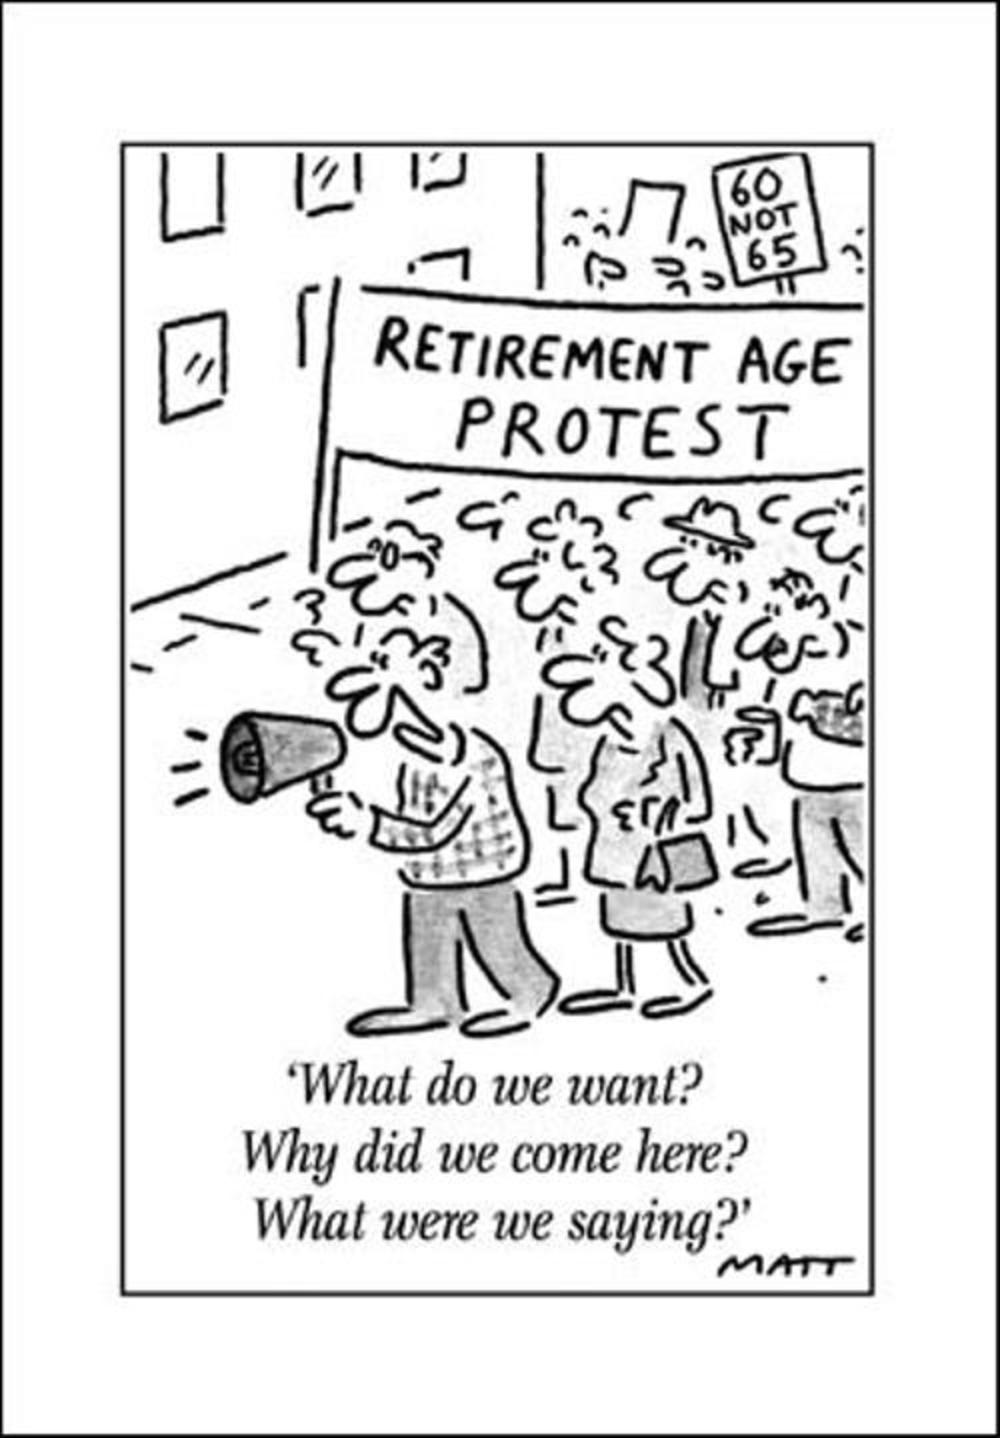 Retirement Age Protest Funny Matt Greeting Card